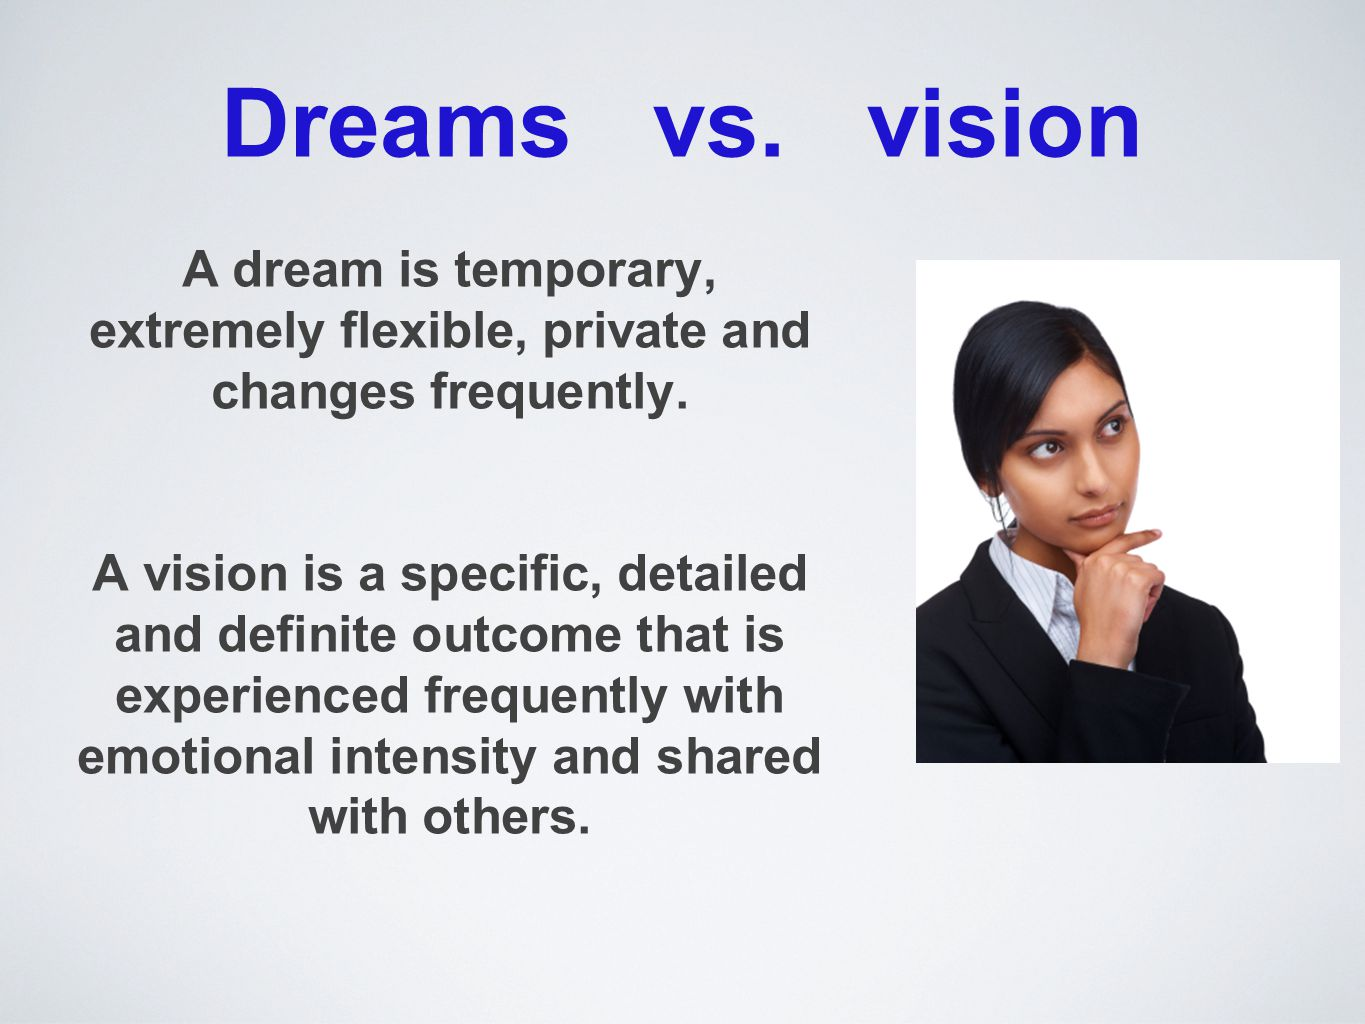 Dreams vs. vision A dream is temporary, extremely flexible, private and changes frequently. A vision is a specific, detailed and definite outcome that